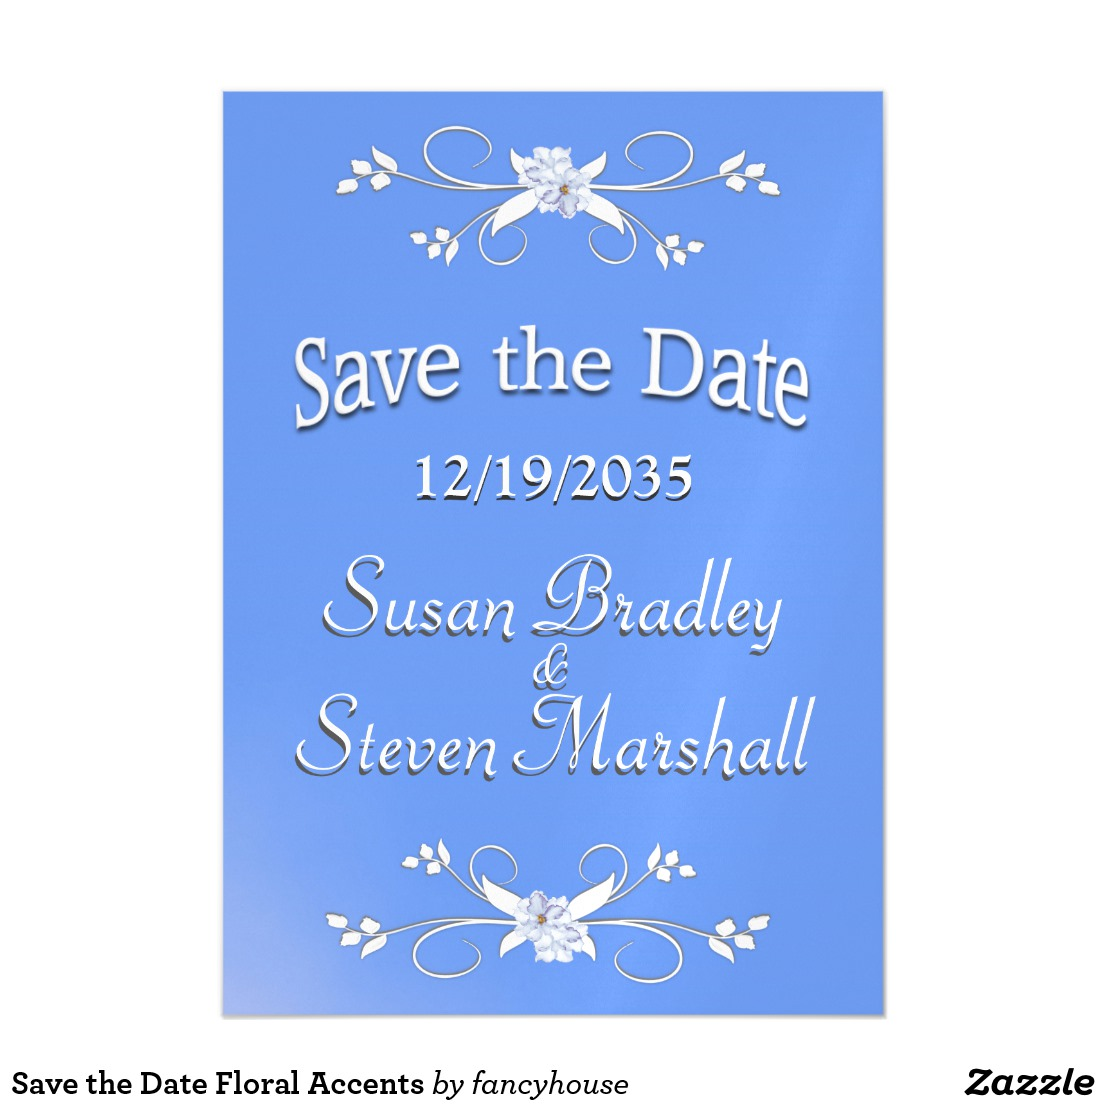 Save the Date Floral Accents Magnetic Card